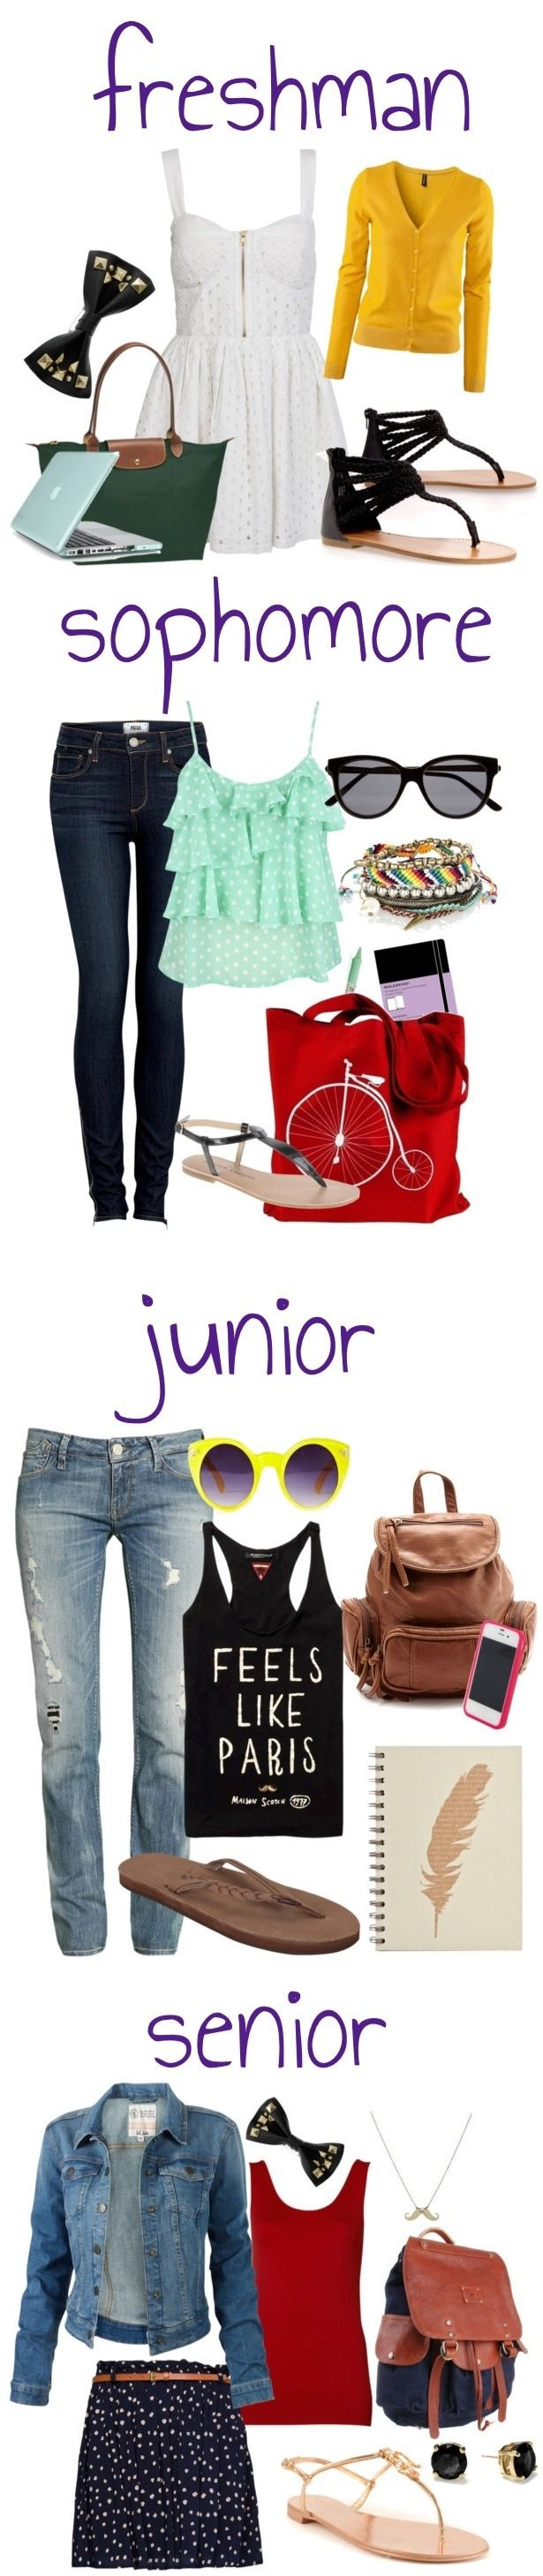 High school outfits!